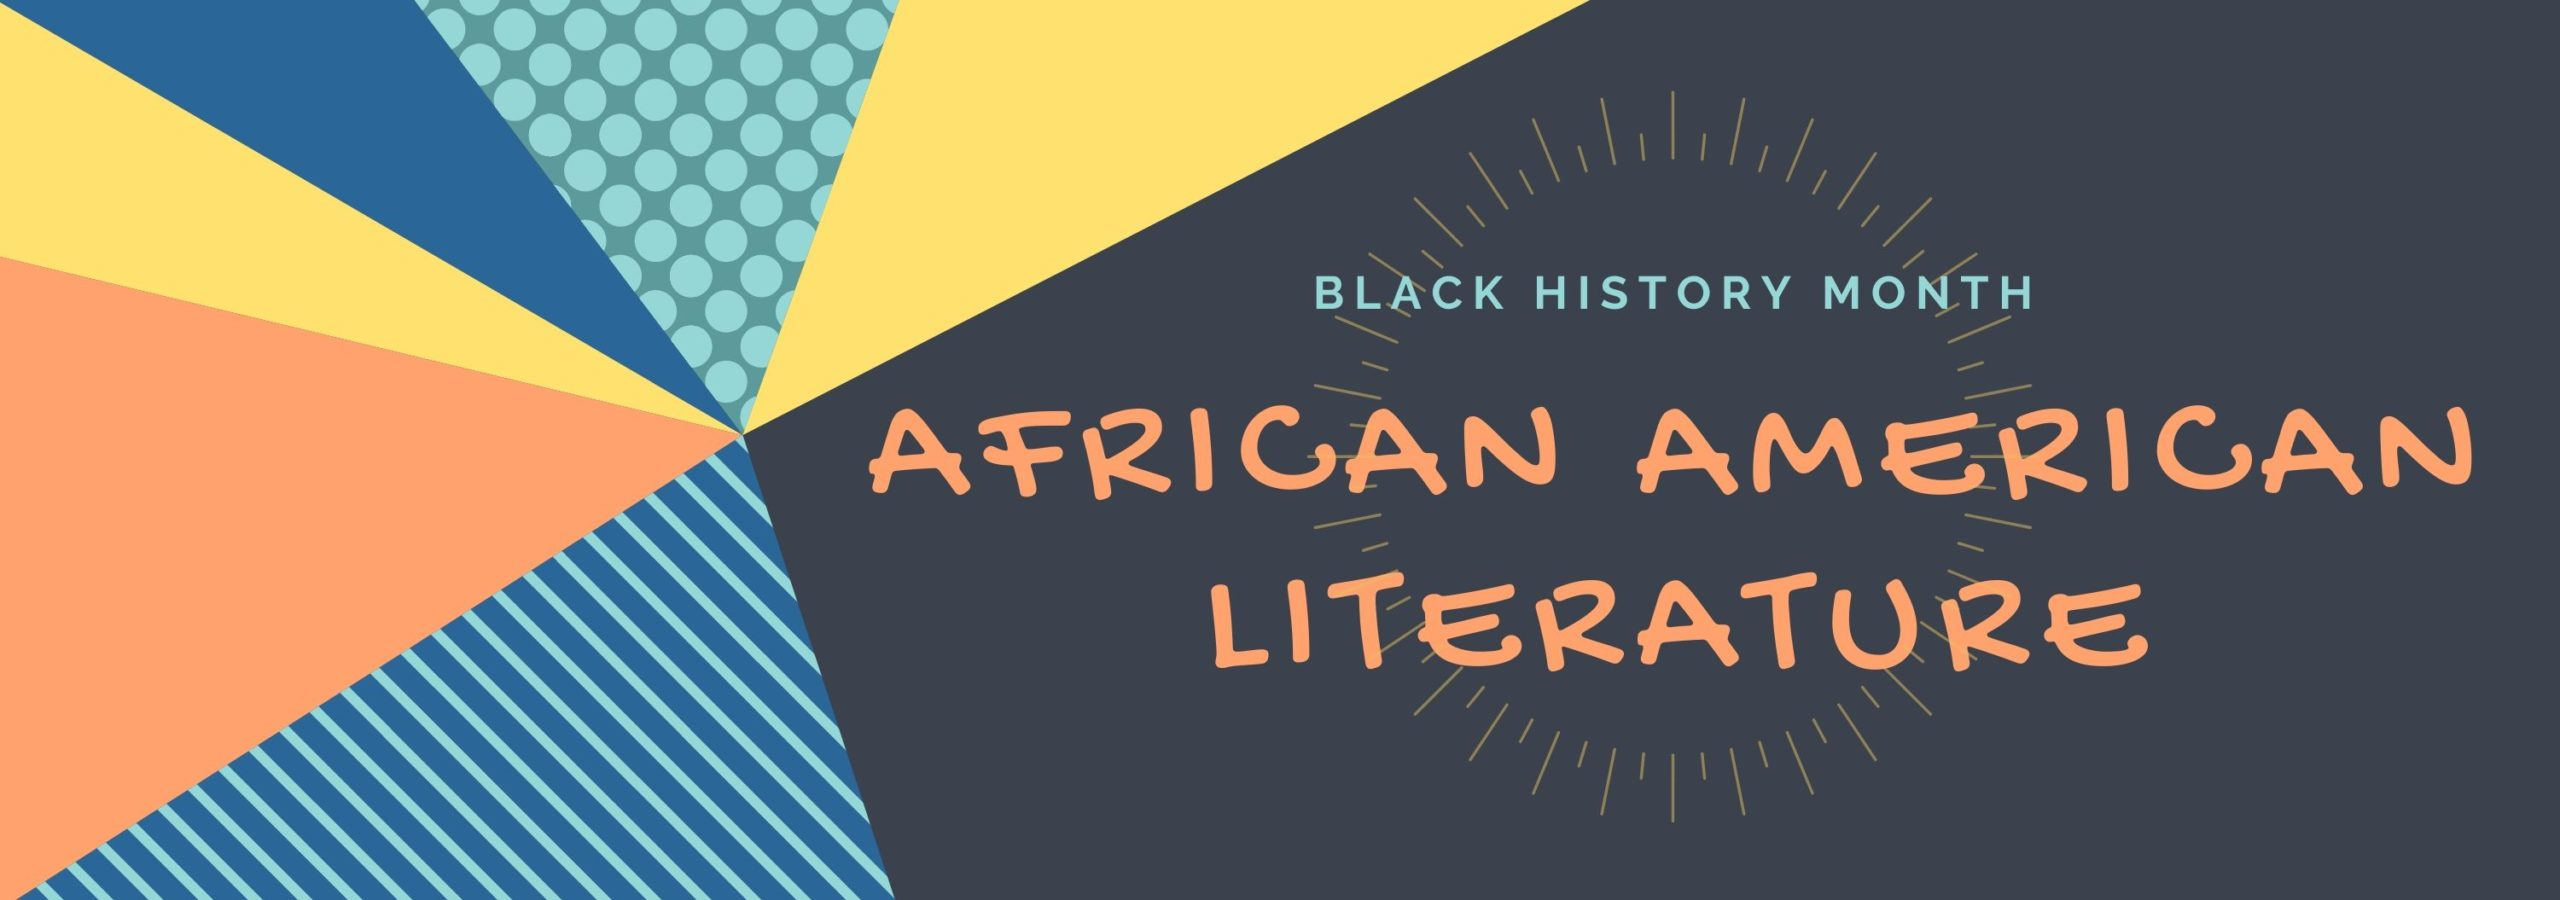 Black History Month Literature By African American Writers Uc Berkeley Library Update